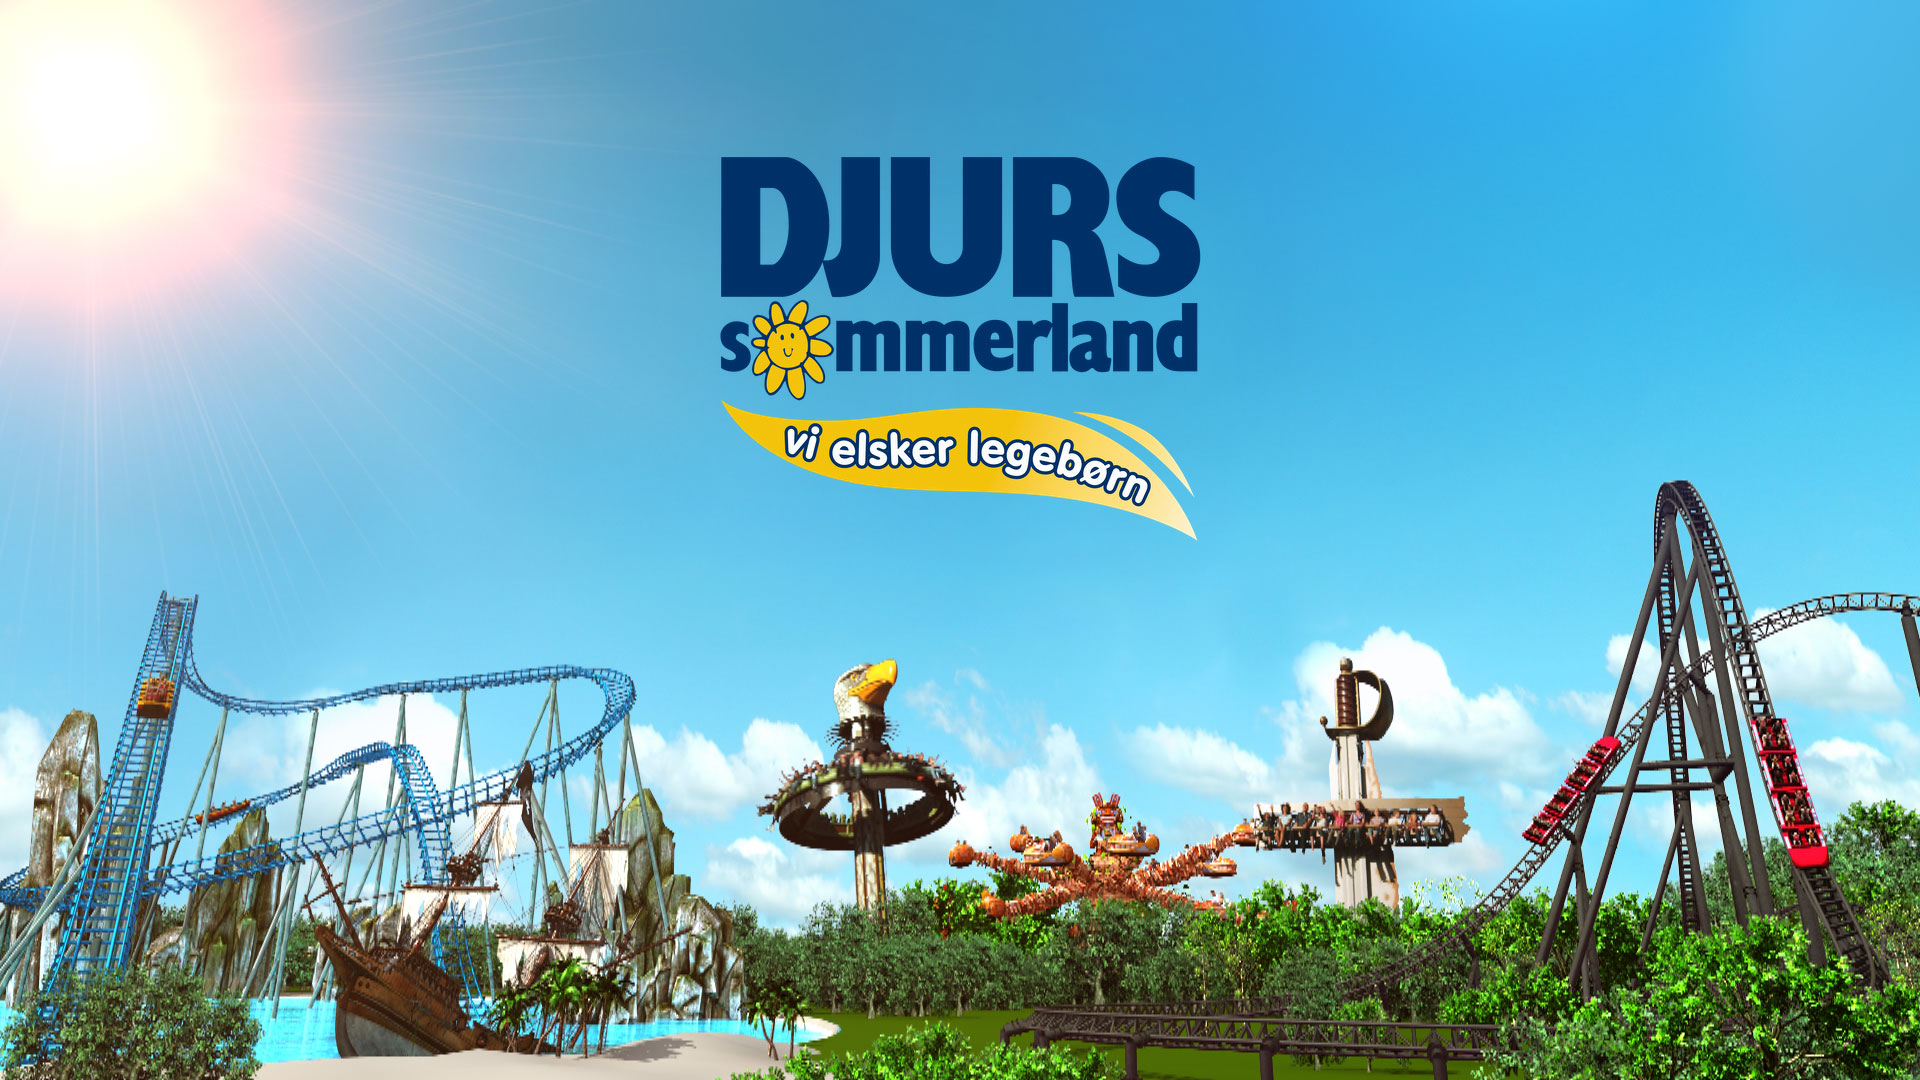 Djurs Sommerland Tv Commercials Sunday Studio